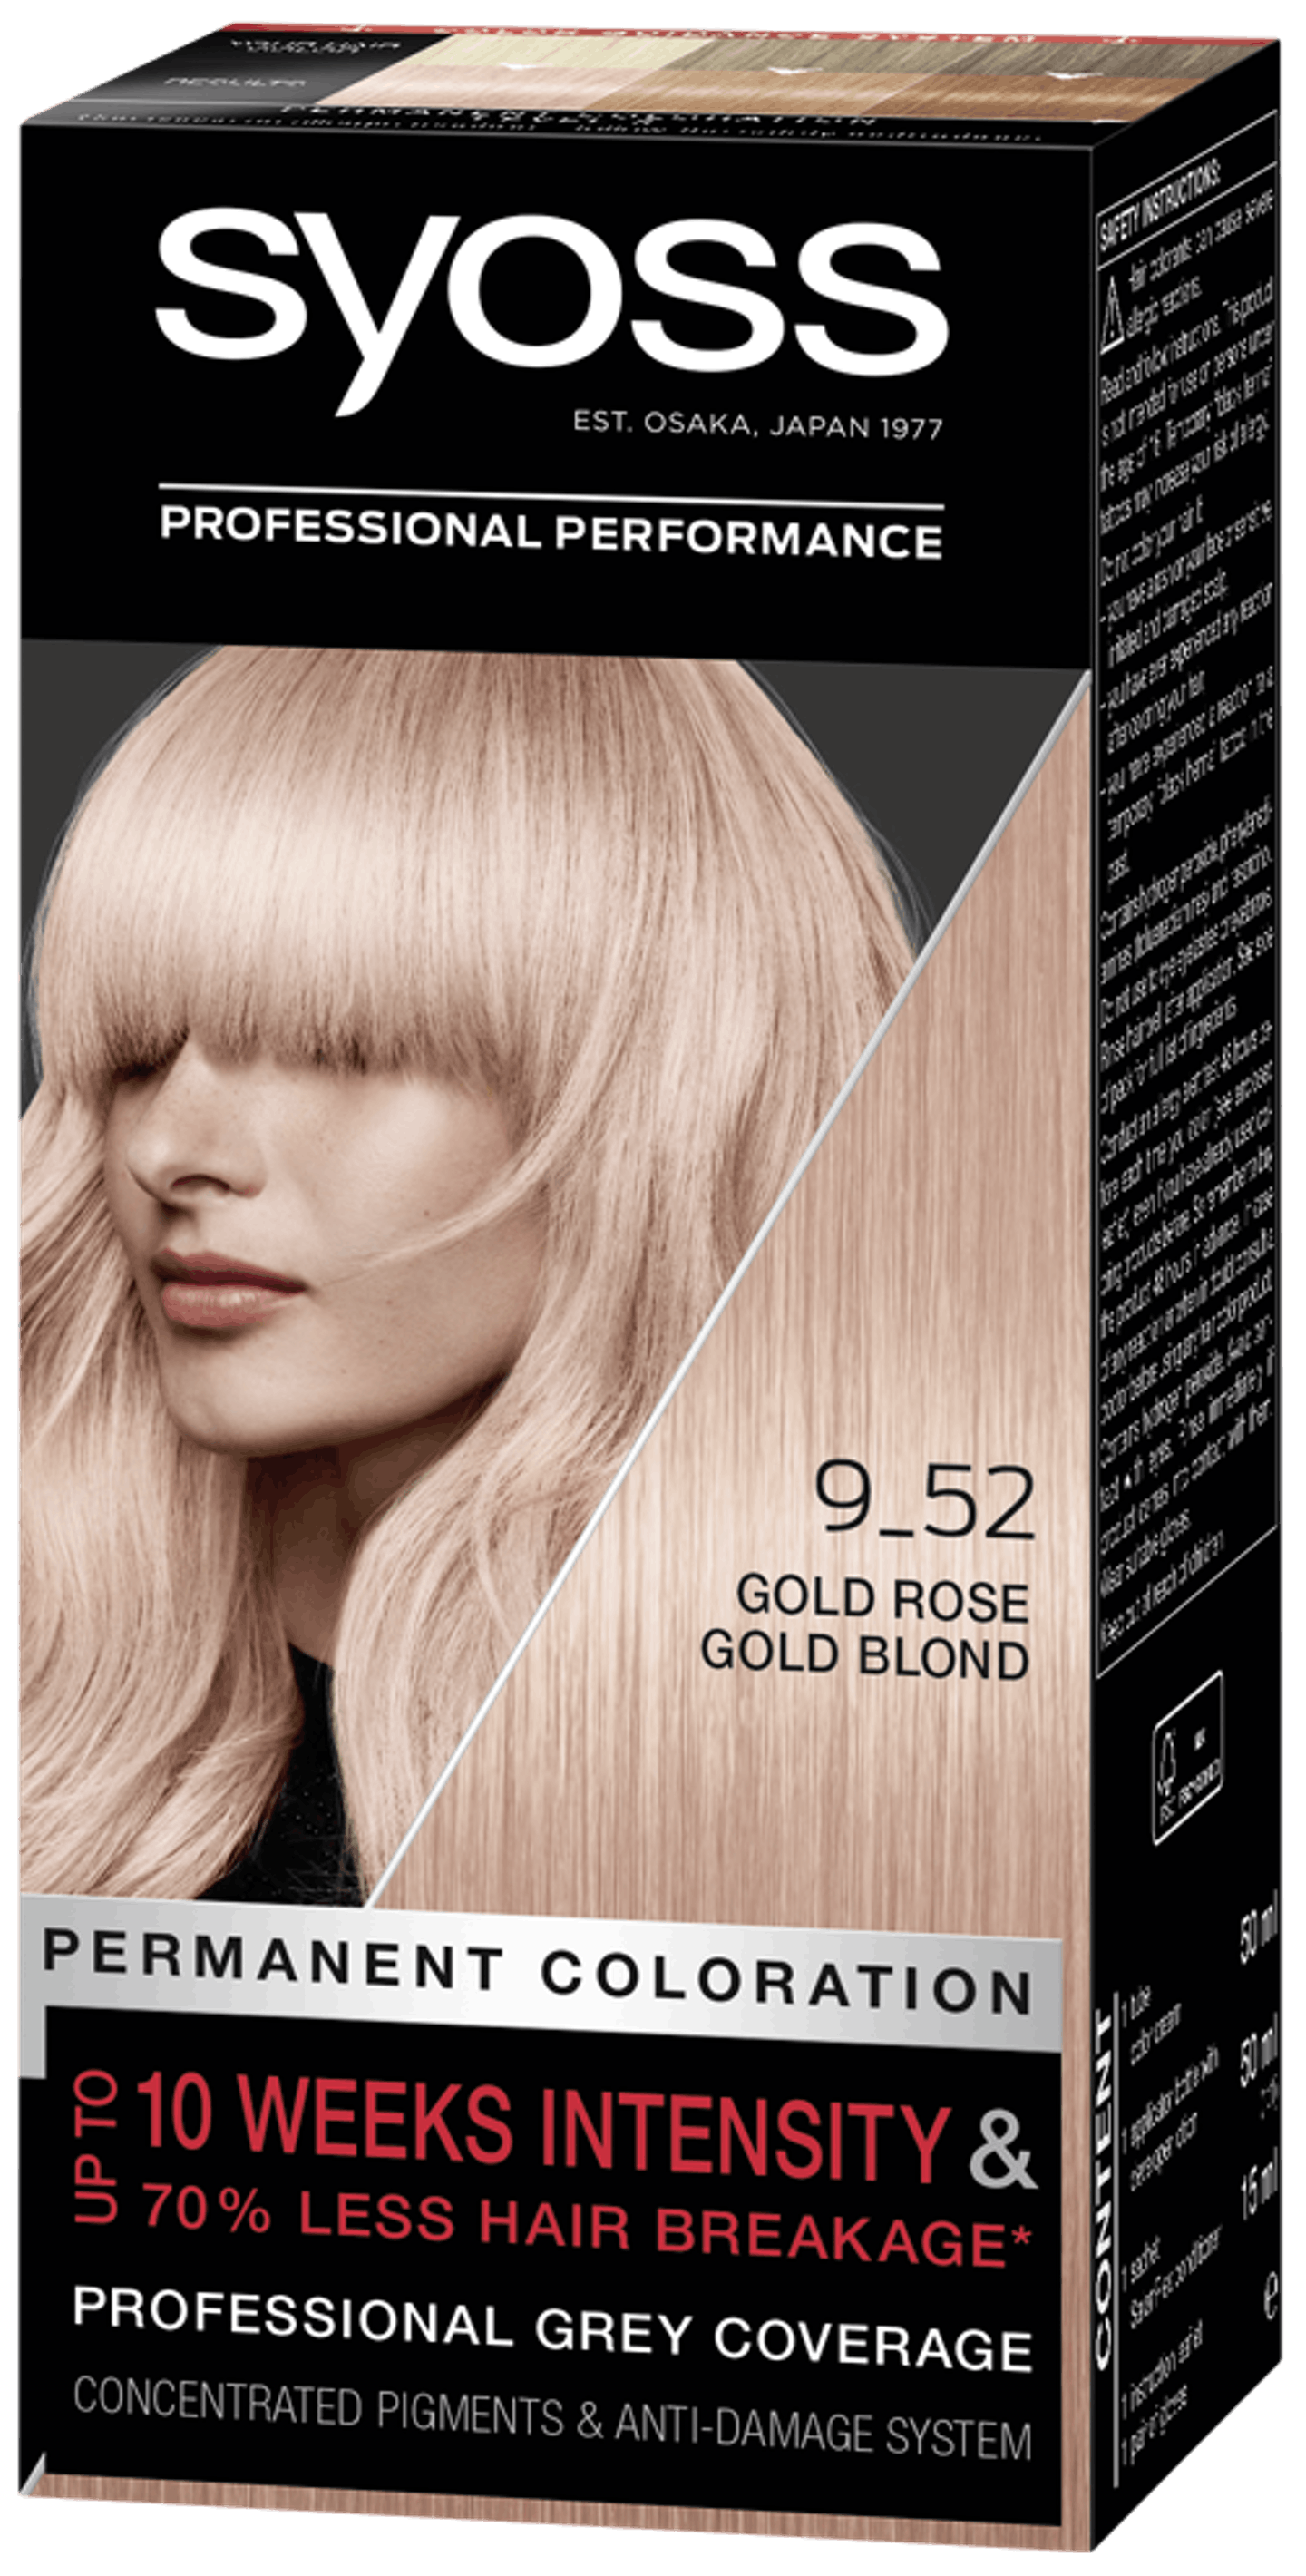 Syoss Permanent Coloration 9_52 Gold Rose Gold Blond